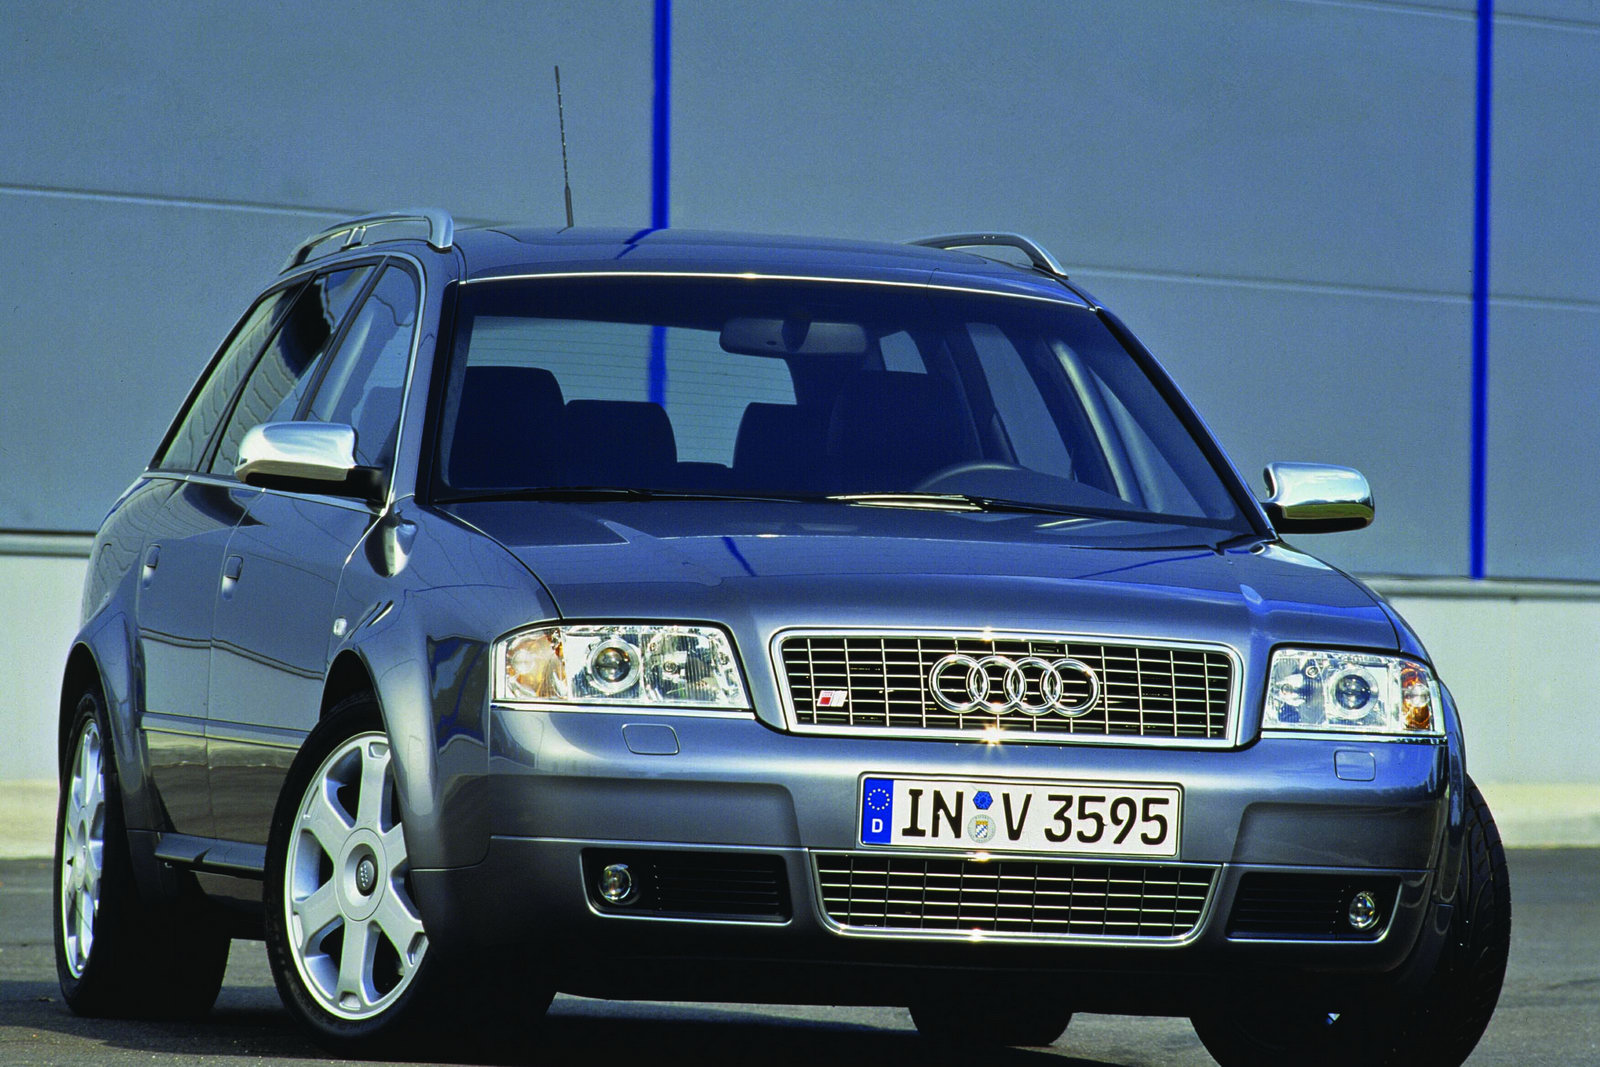 Audi recalls a6 s6 rs6 over fuel leak issue autoevolution for 2000 audi a6 window problems